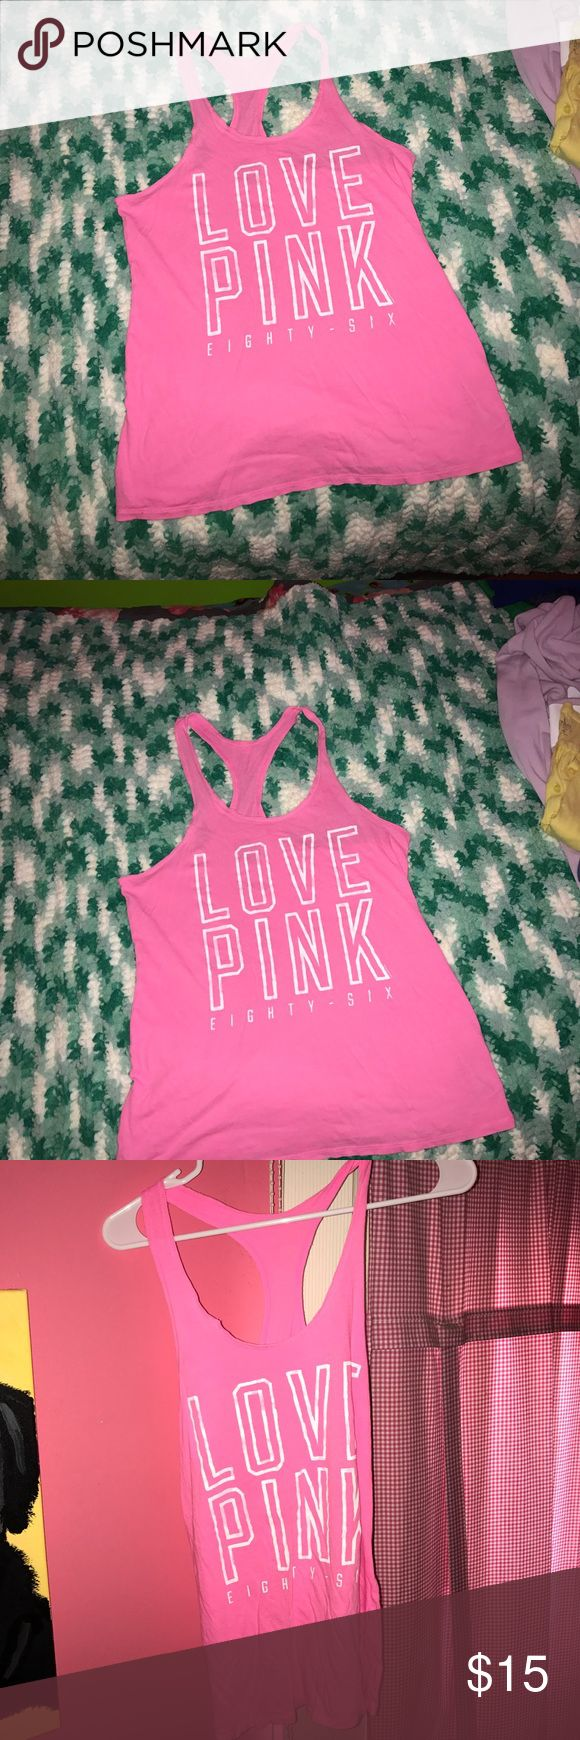 FINAL PRICE PINK TANK TOP PINK Victoria's Secret small lightweight tank top. Comfortable. Smoke free home. No stains/pilling/rips anything like that. True pink color. Fits true to size. Only have worn a few times PINK Victoria's Secret Tops Tank Tops